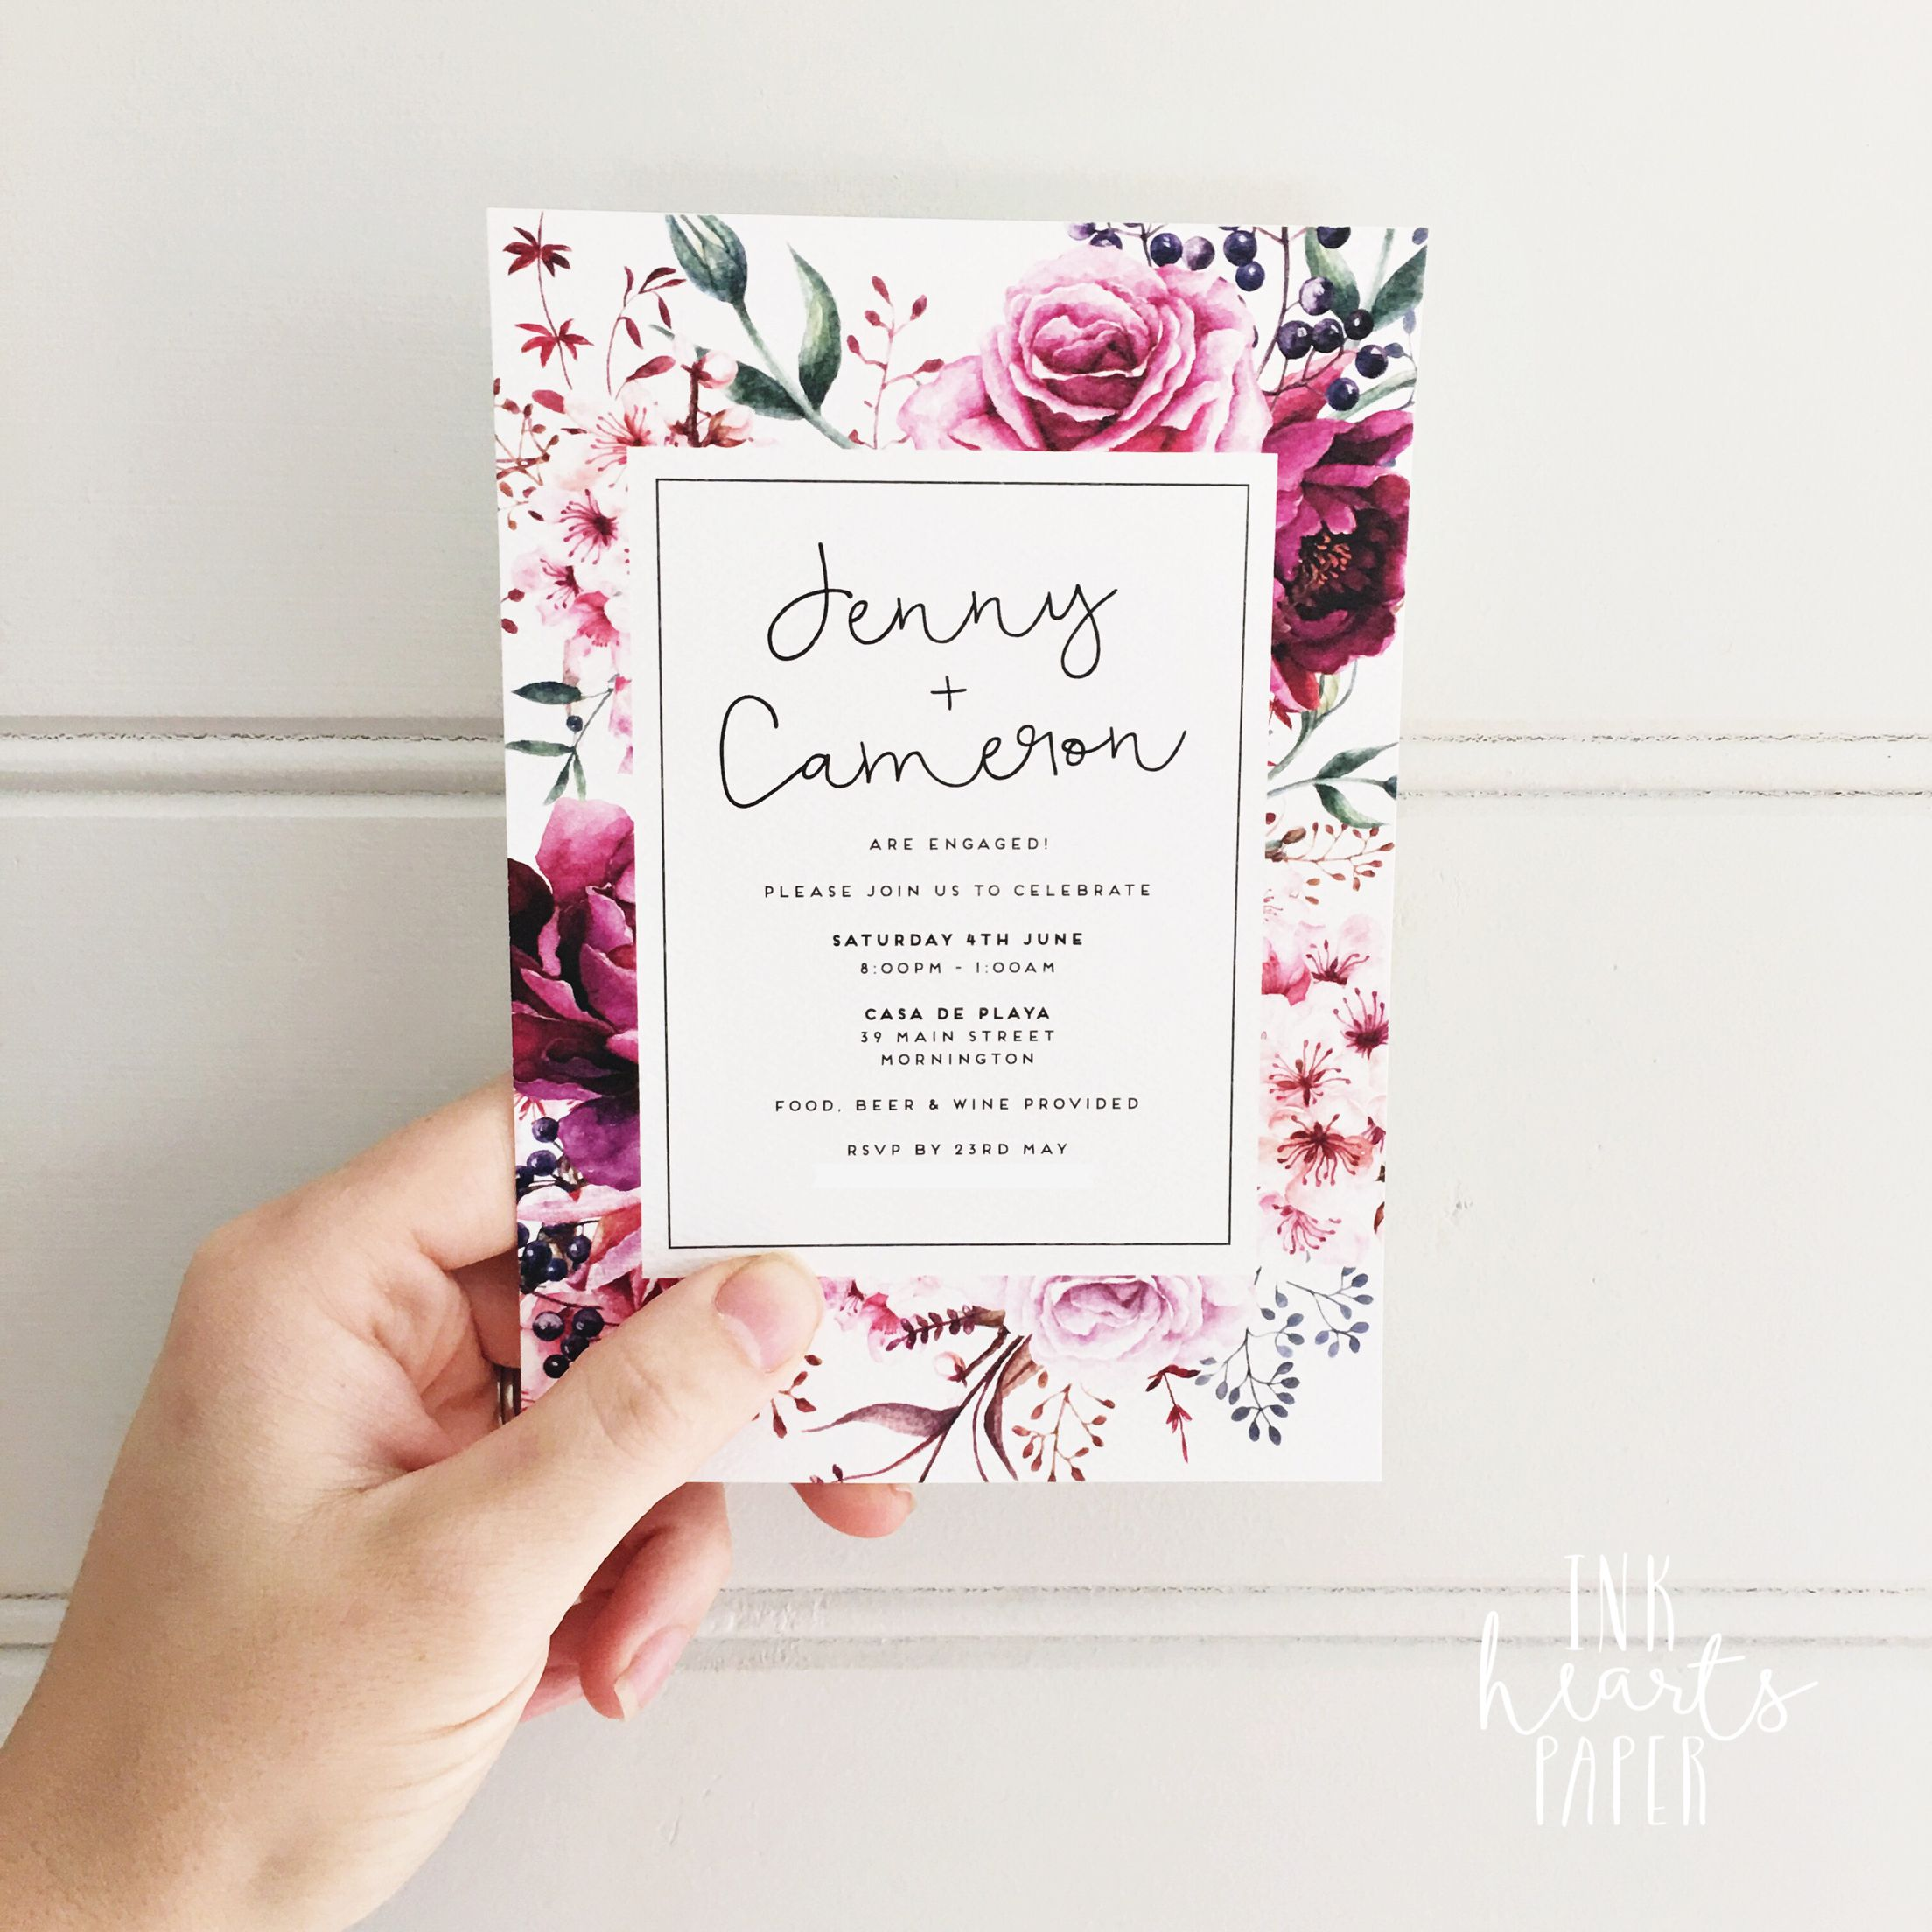 Floral Classy Modern White Invitation Engagement Invitation Design